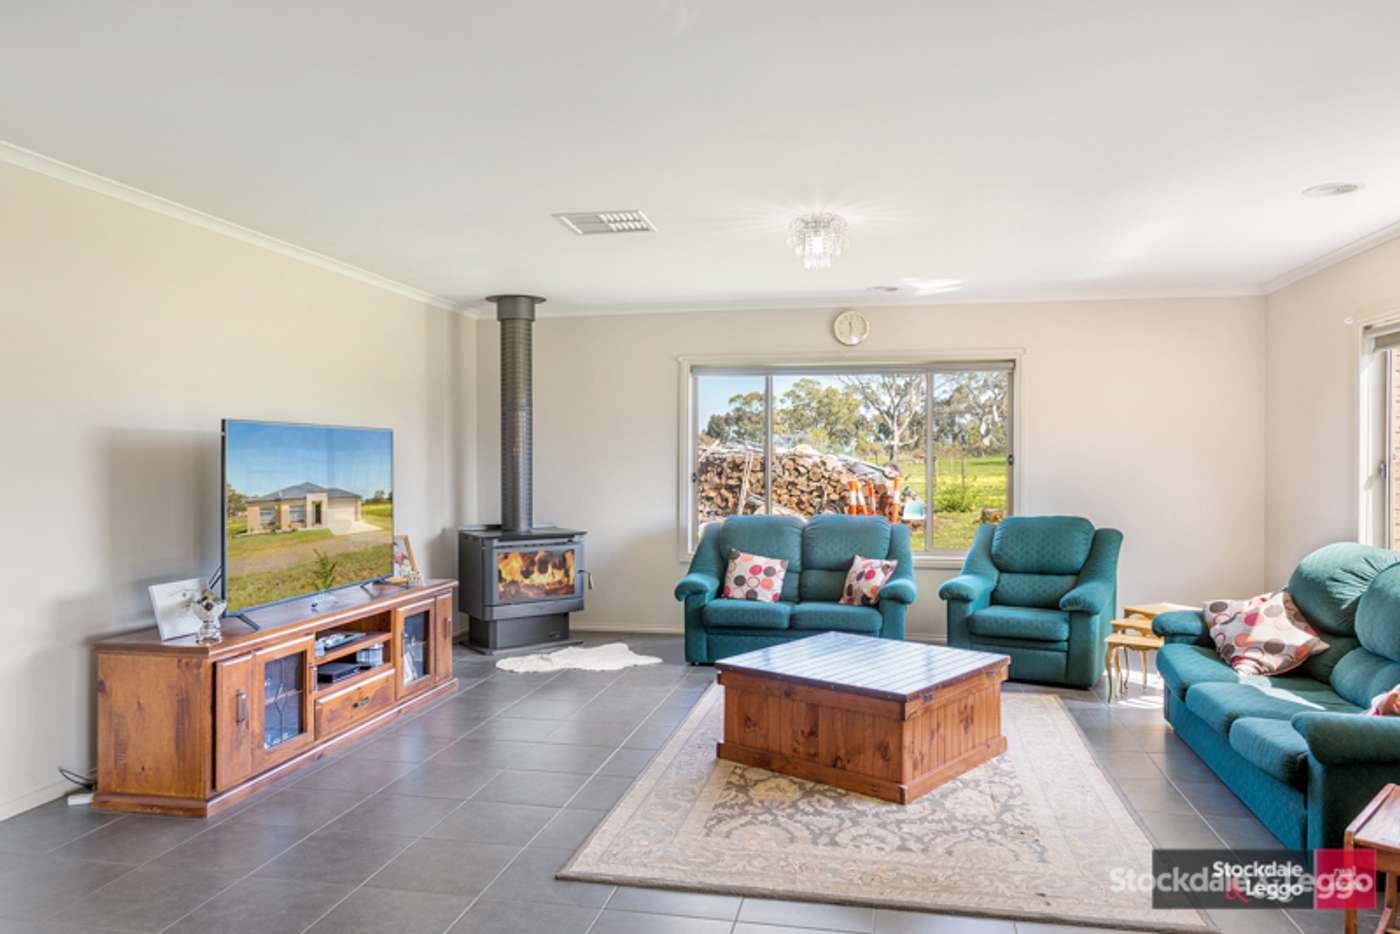 Fifth view of Homely house listing, 28 Lomandra Drive, Teesdale VIC 3328